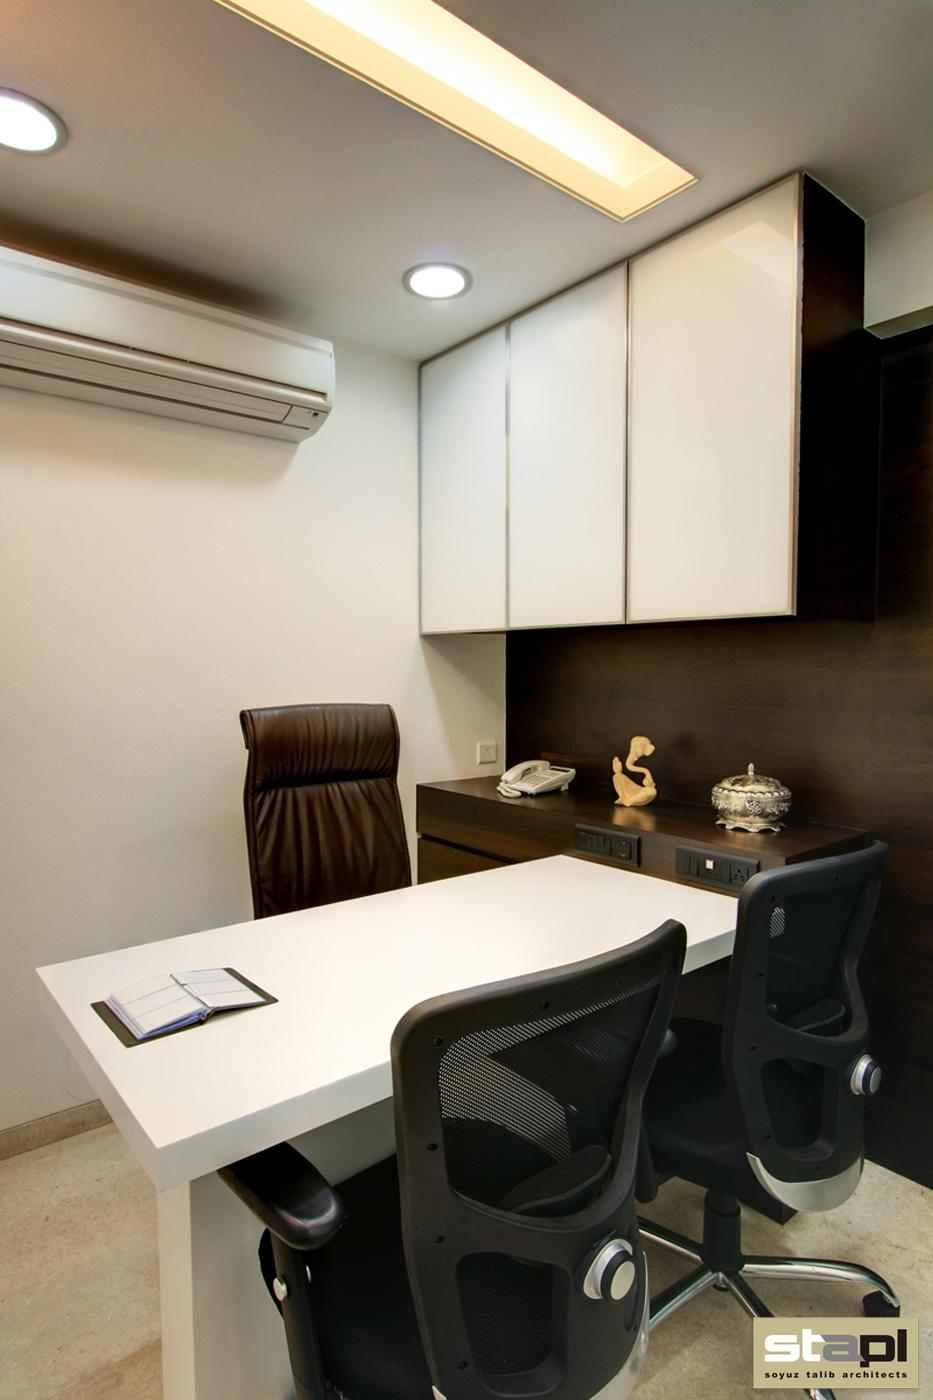 Siddhi vinayak construction soyuz talib architects for Small office cabin interior design ideas